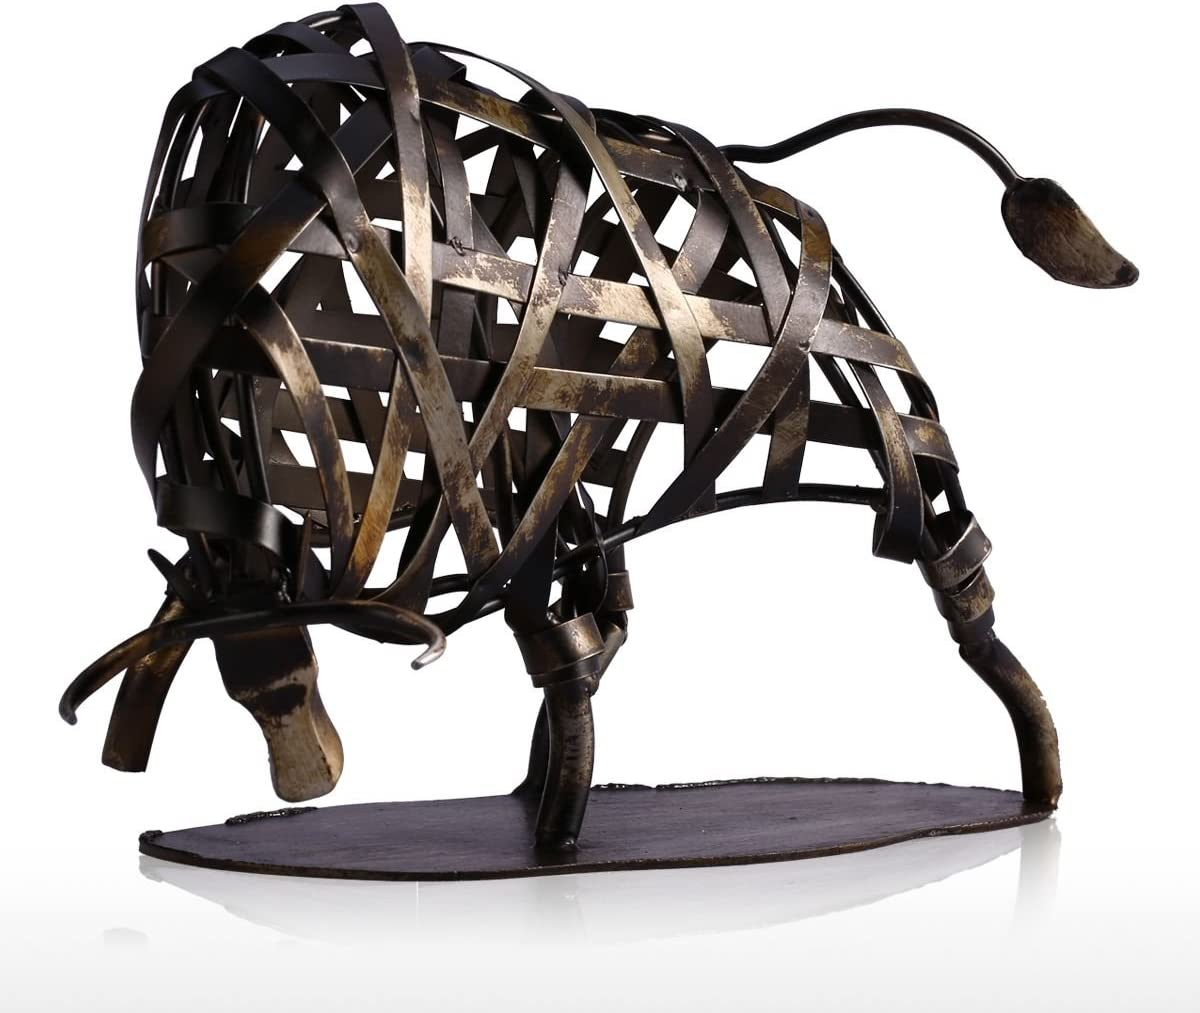 Tooarts Metal Modern Sculpture Iron Braided Cattle Home Handmade Statue Crafts